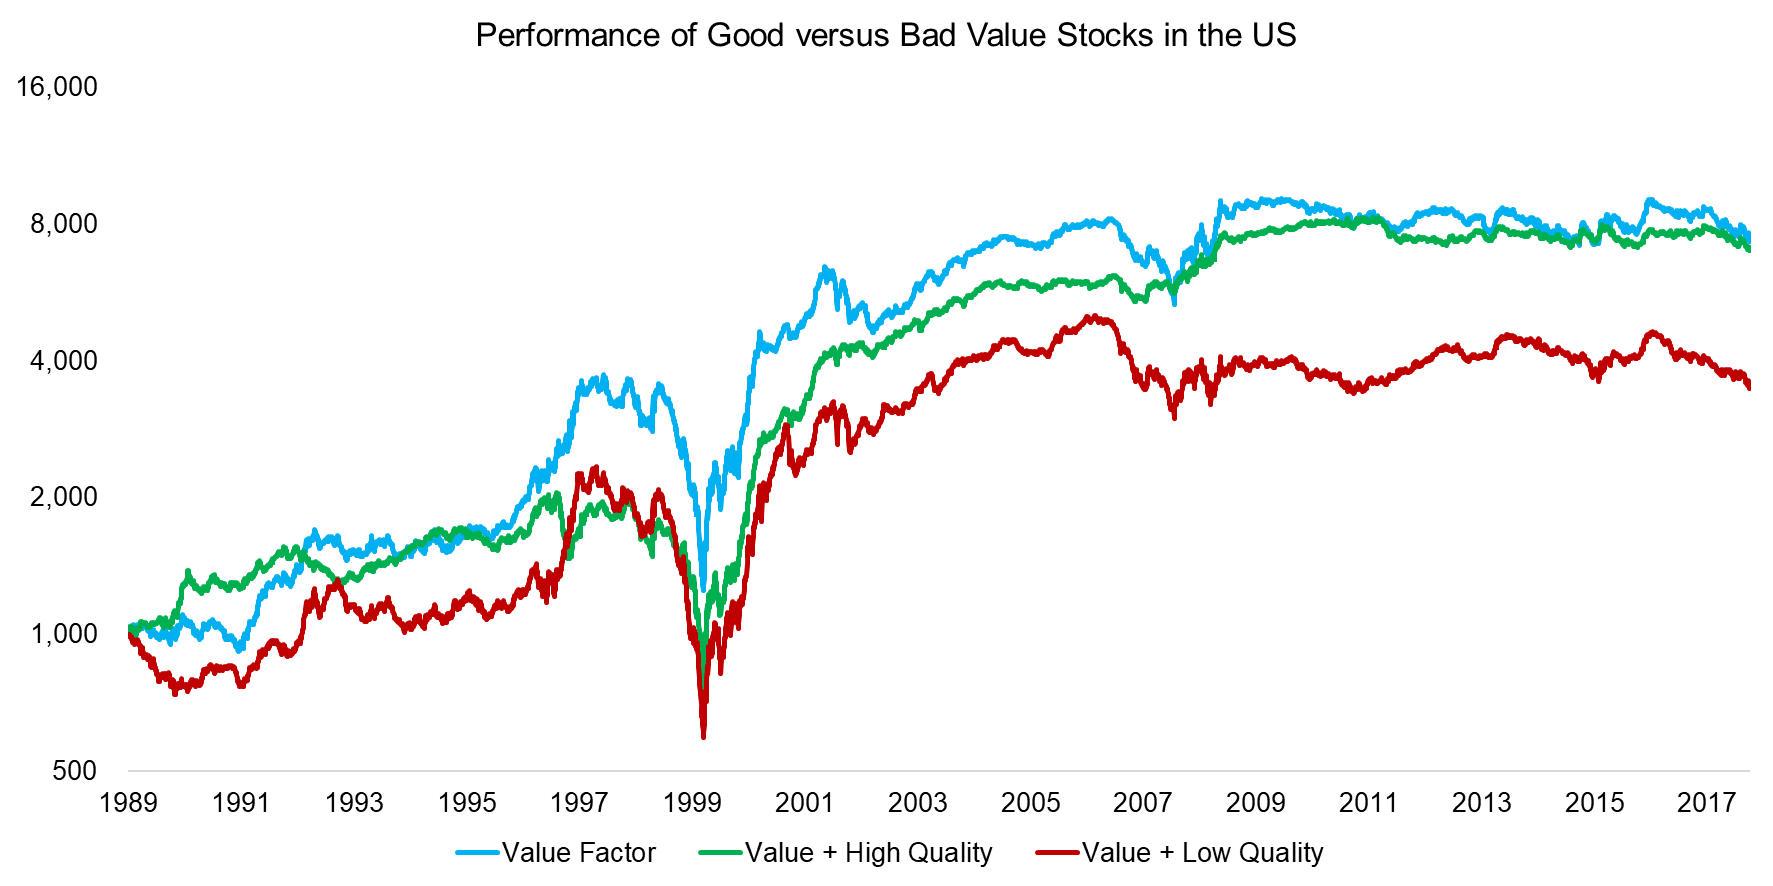 Performance of Good versus Bad Value Stocks in the US